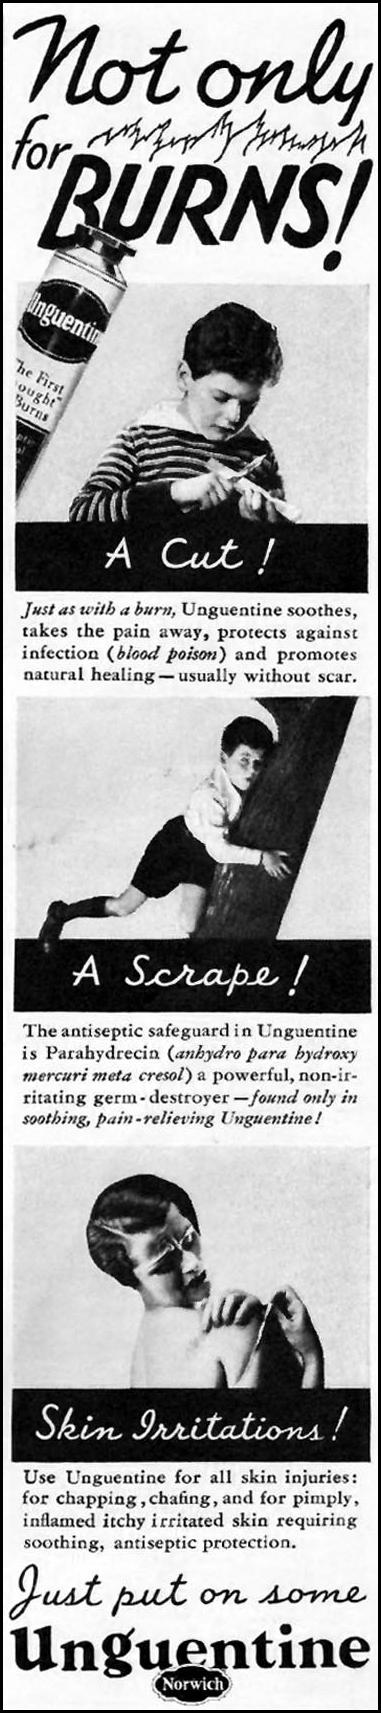 UNGUENTINE ANTISEPTIC BETTER HOMES AND GARDENS 05/01/1936 p. 105